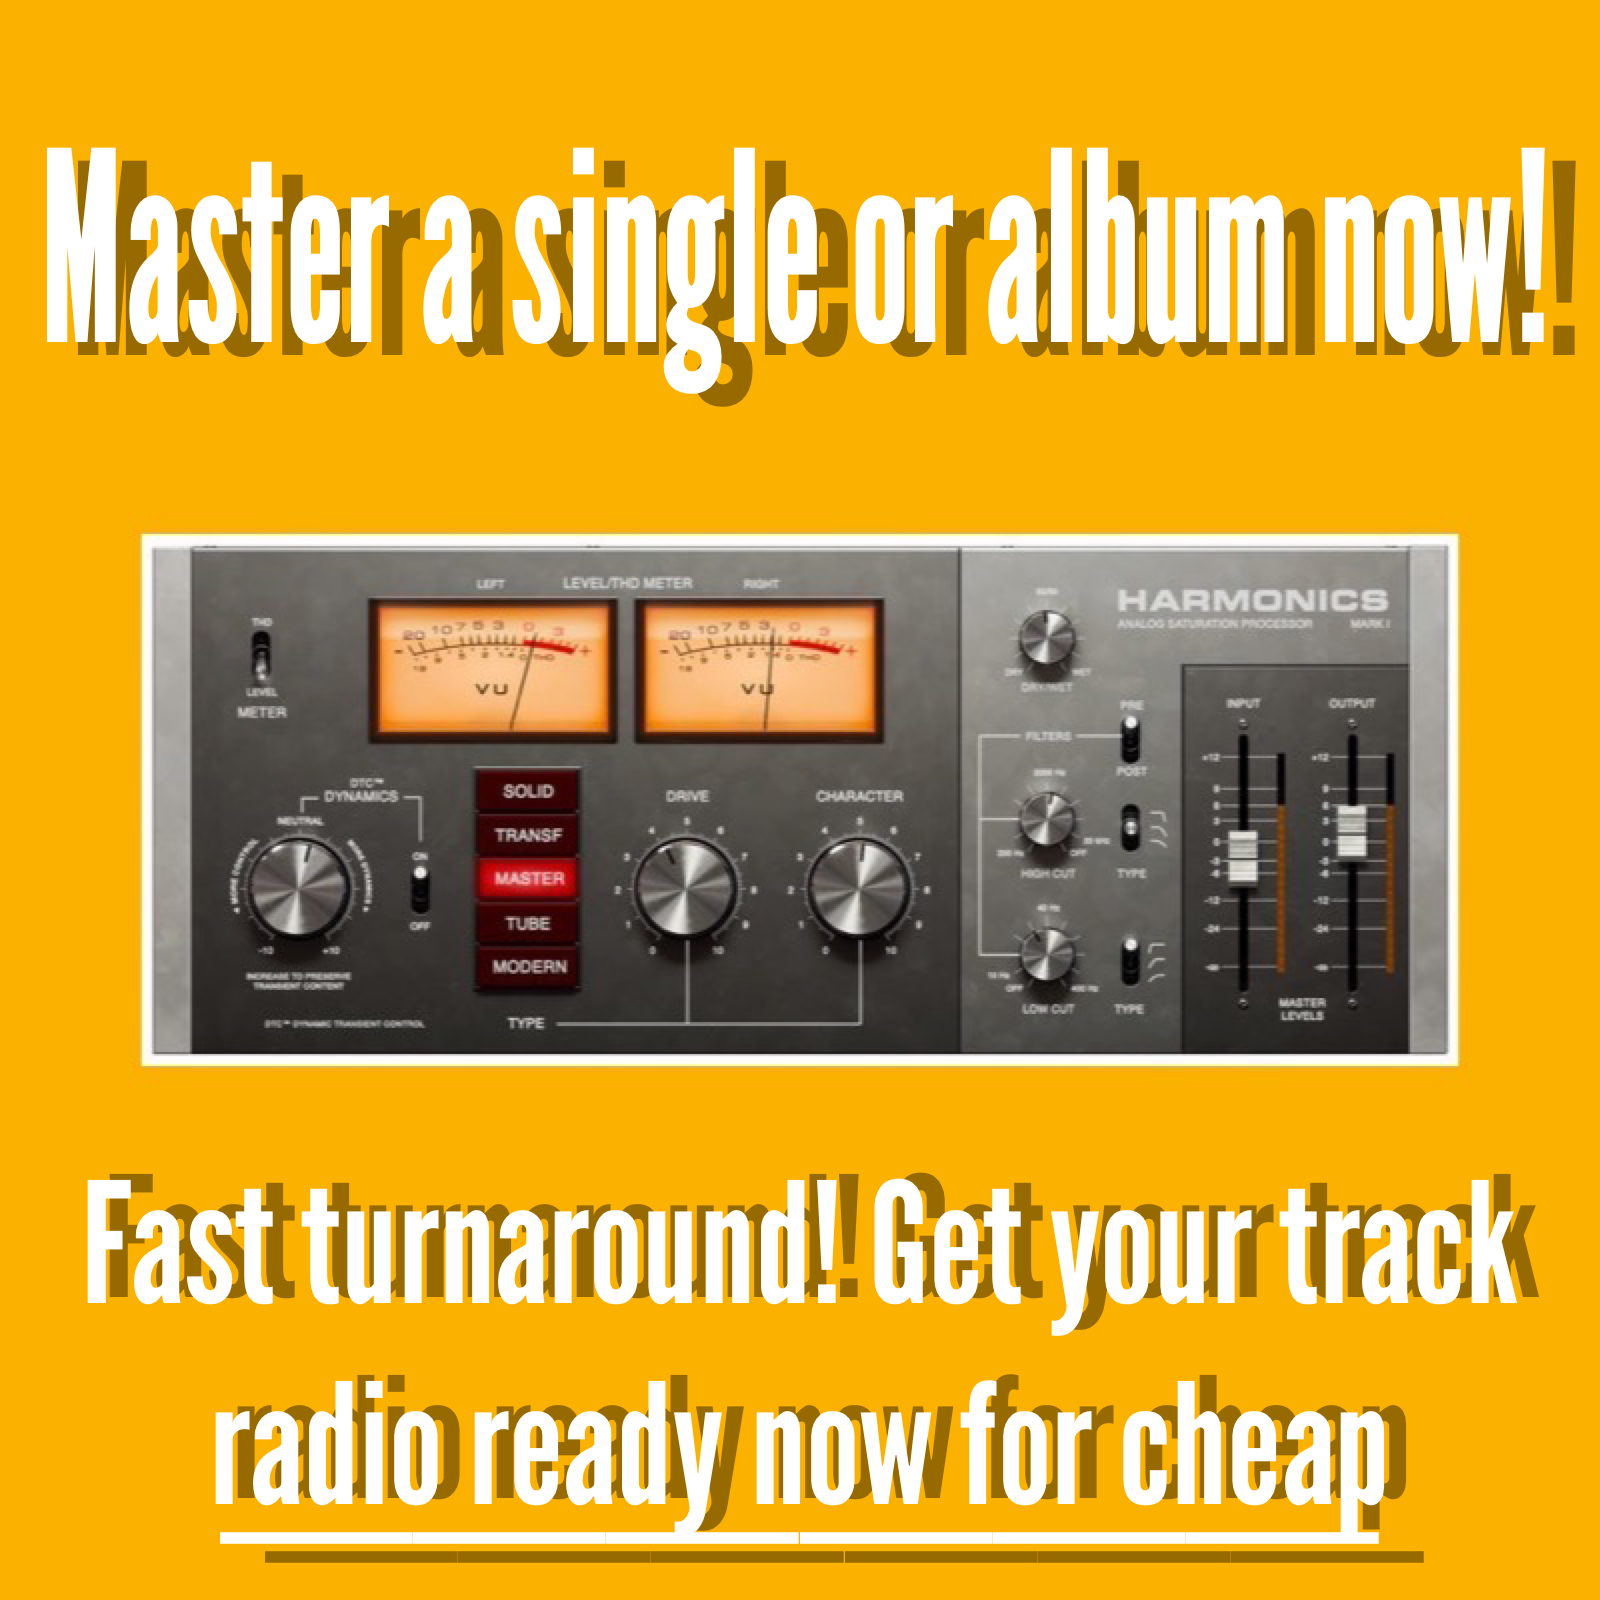 Master your single/album now! (quality guaranteed)